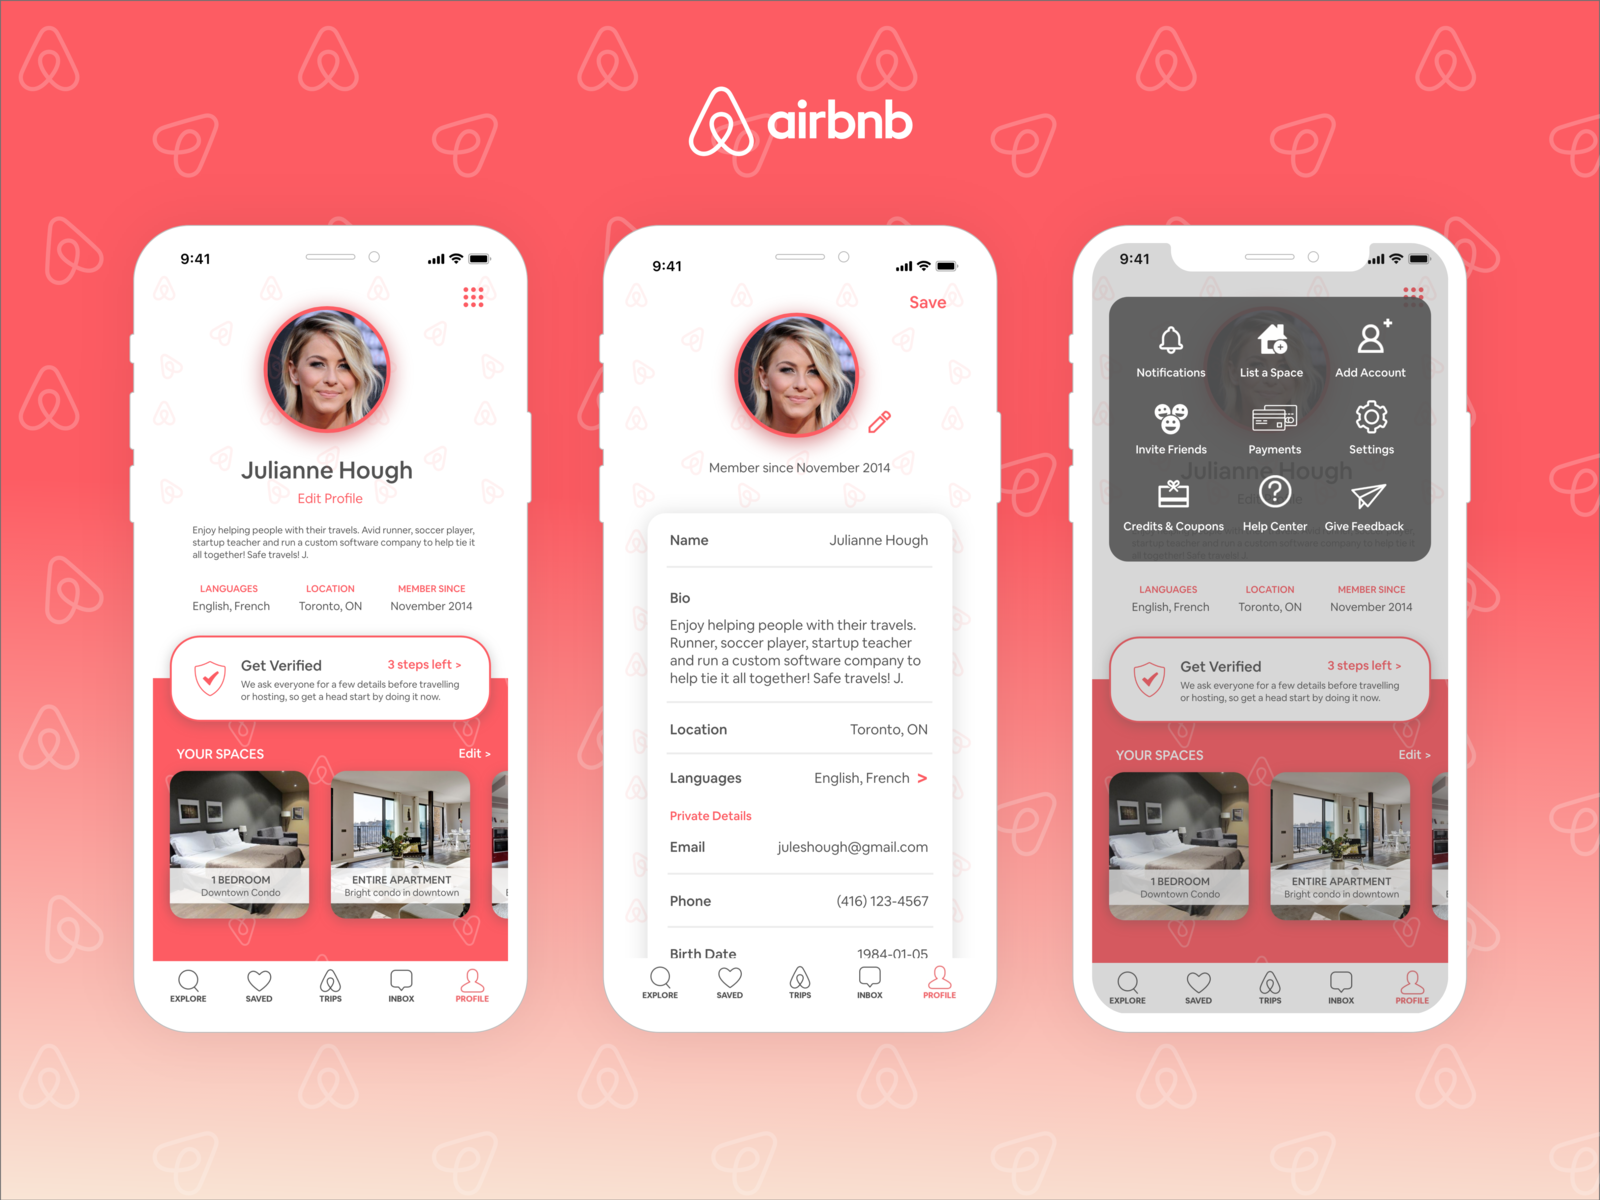 How to build an app like Airbnb?